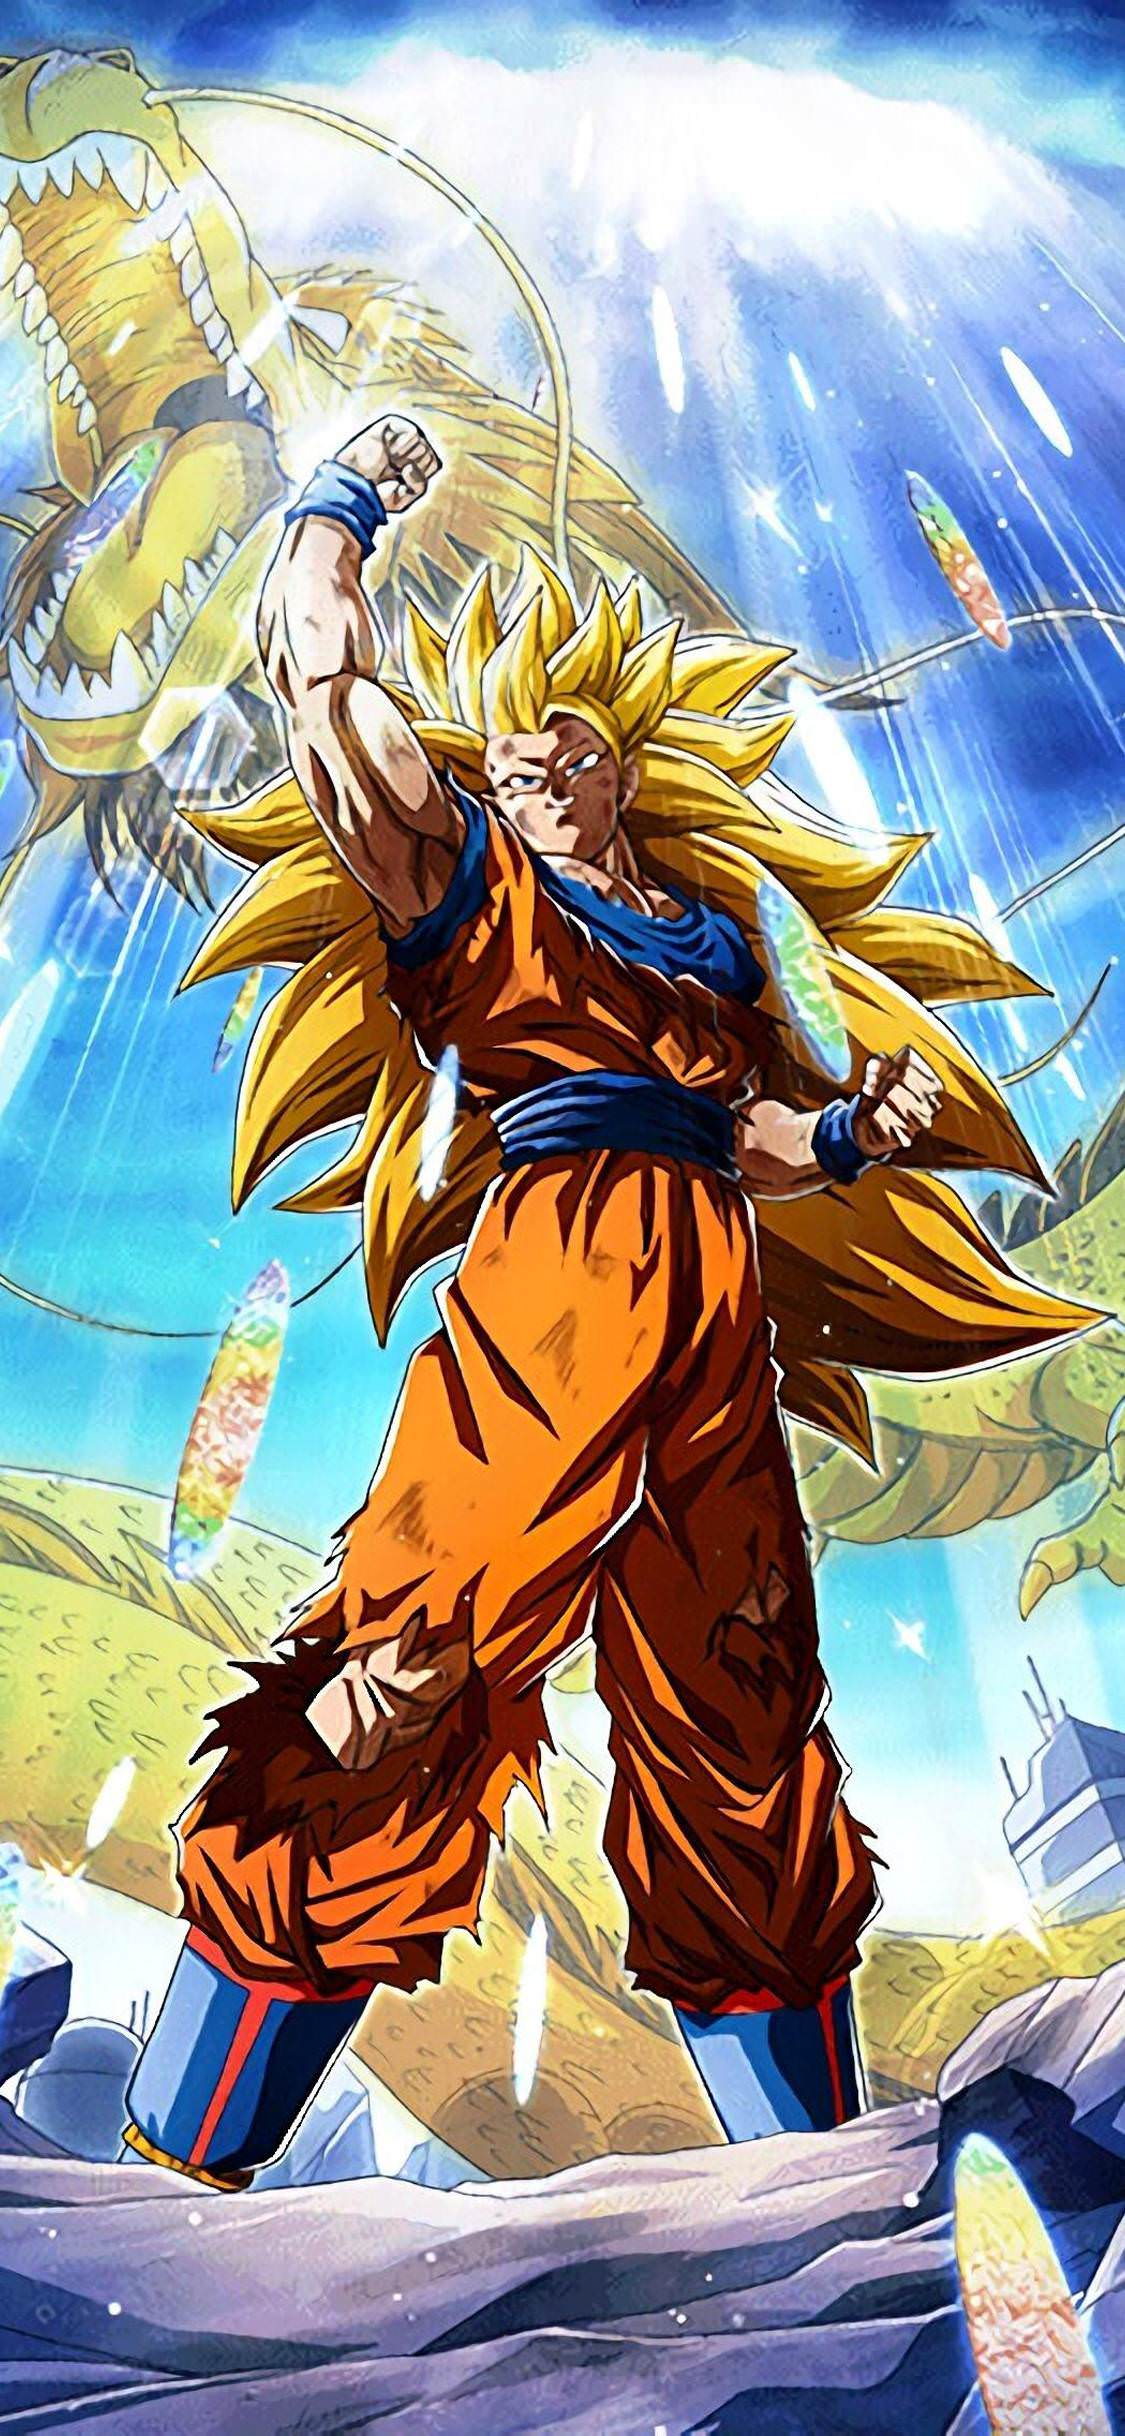 Dbz Wallpaper Iphone Posted By Michelle Johnson